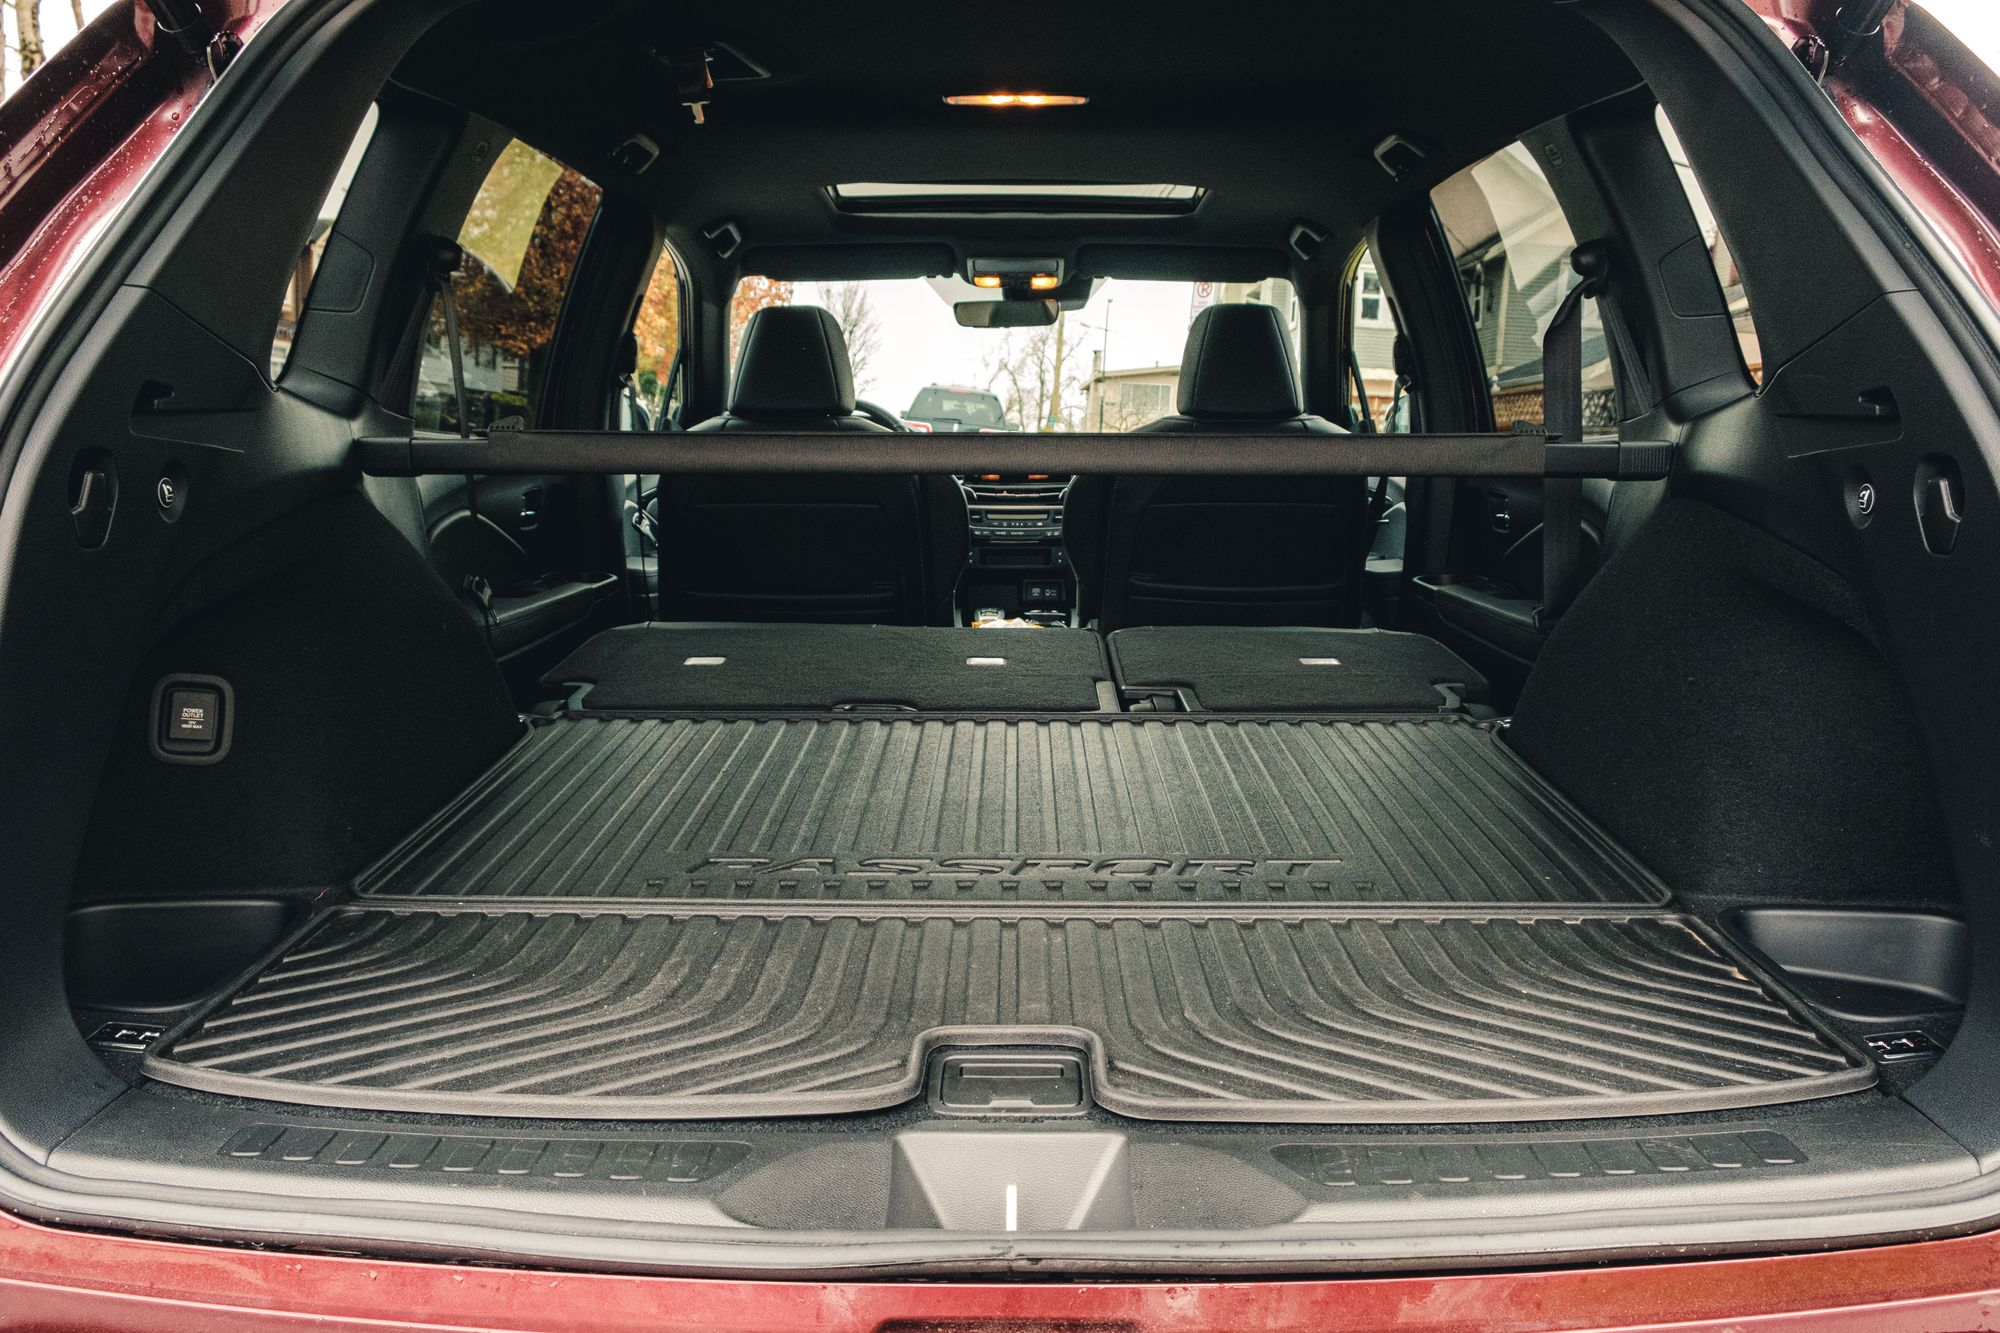 Honda Passport Trunk w/ Folded Down Seats